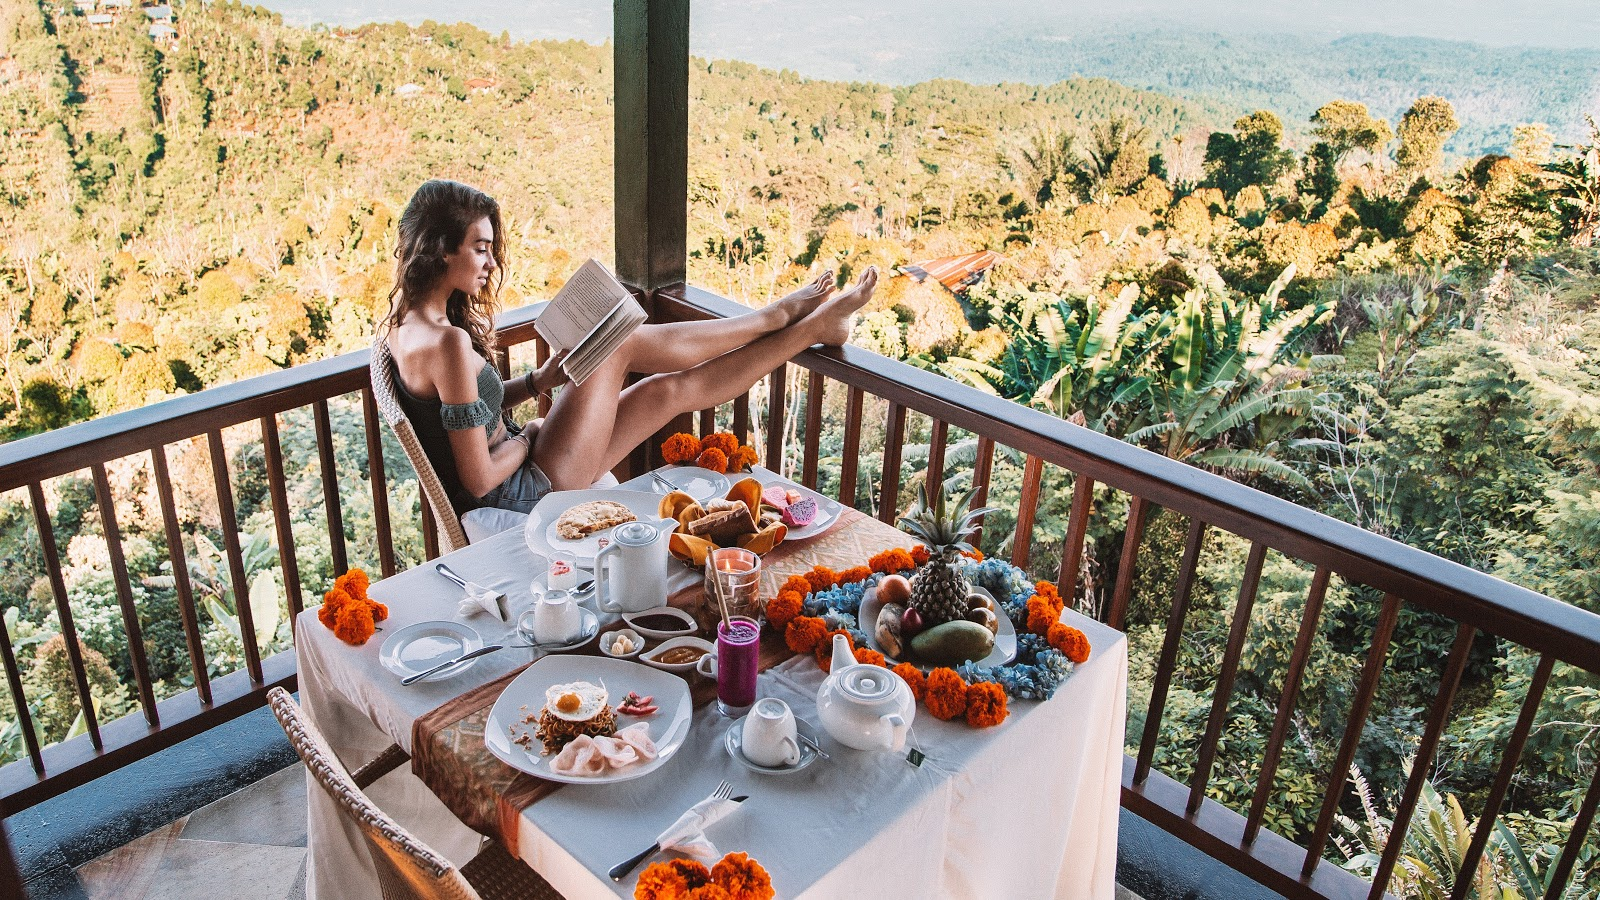 a lady reading a book while having breakfast in the balcony